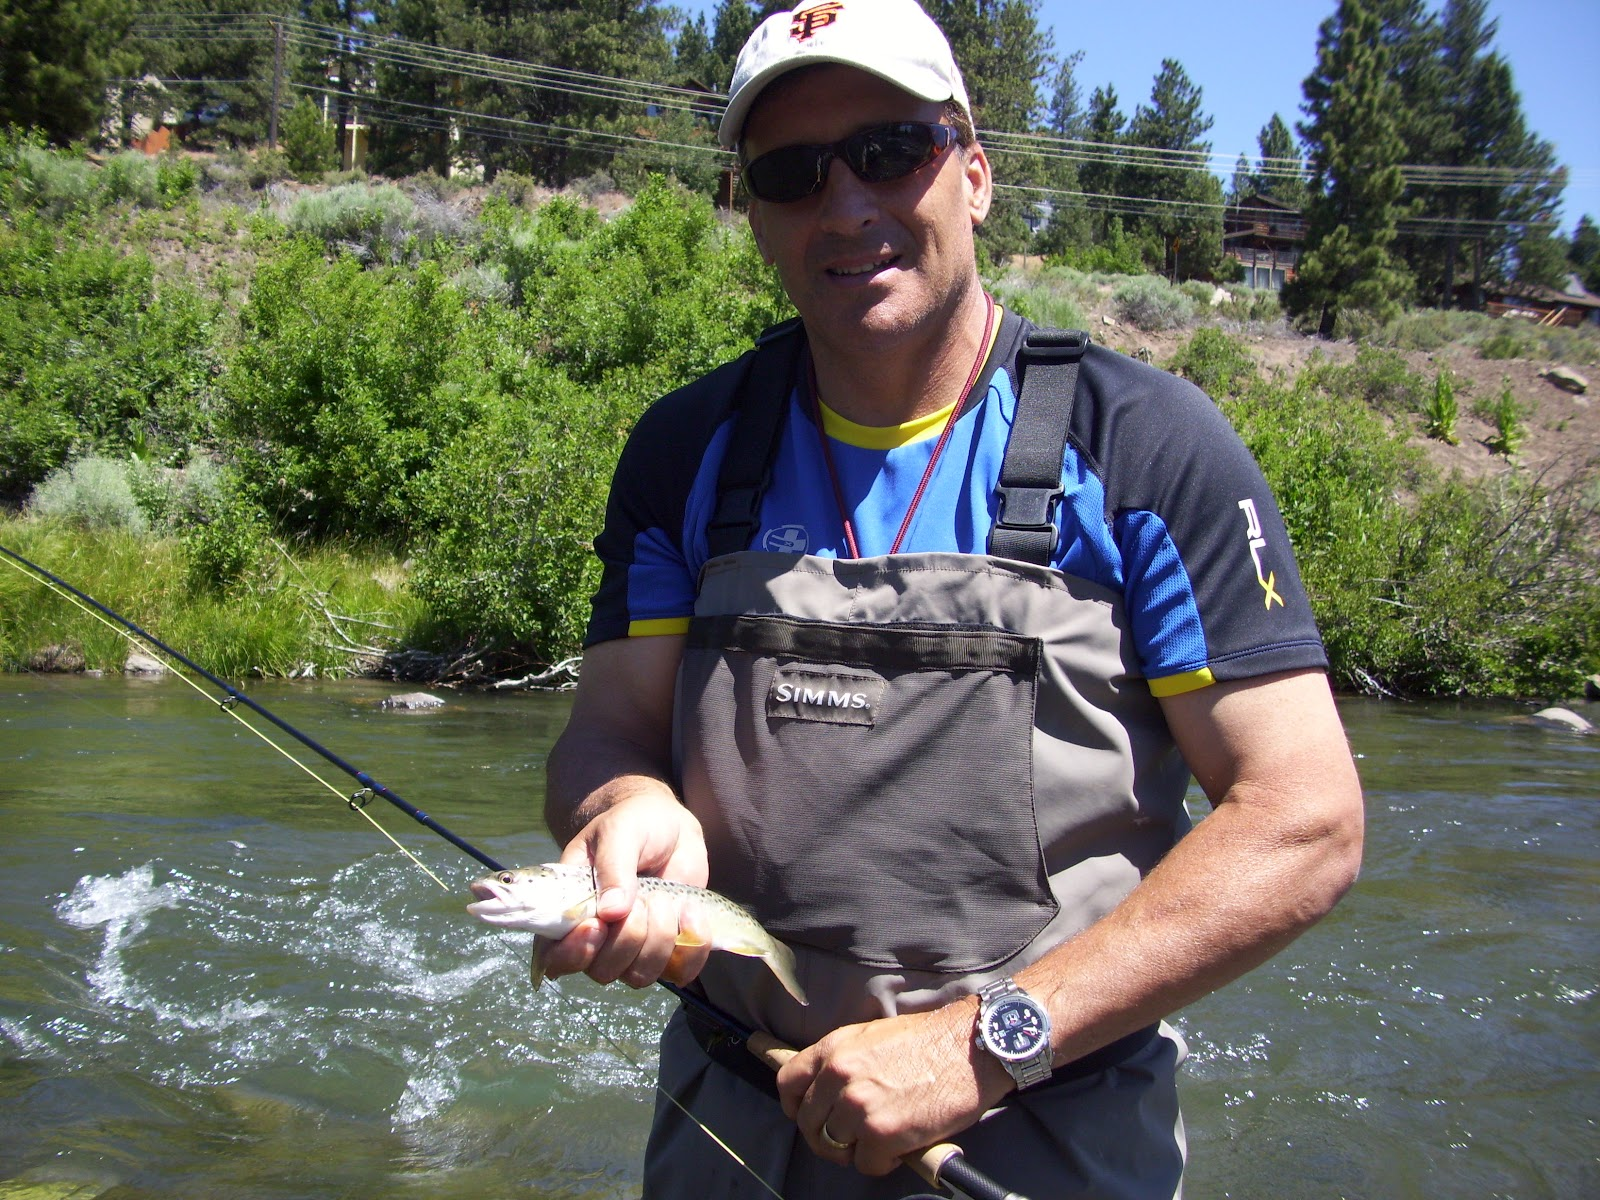 Northern sierra fly fishing july 2012 for Is the fishing good today